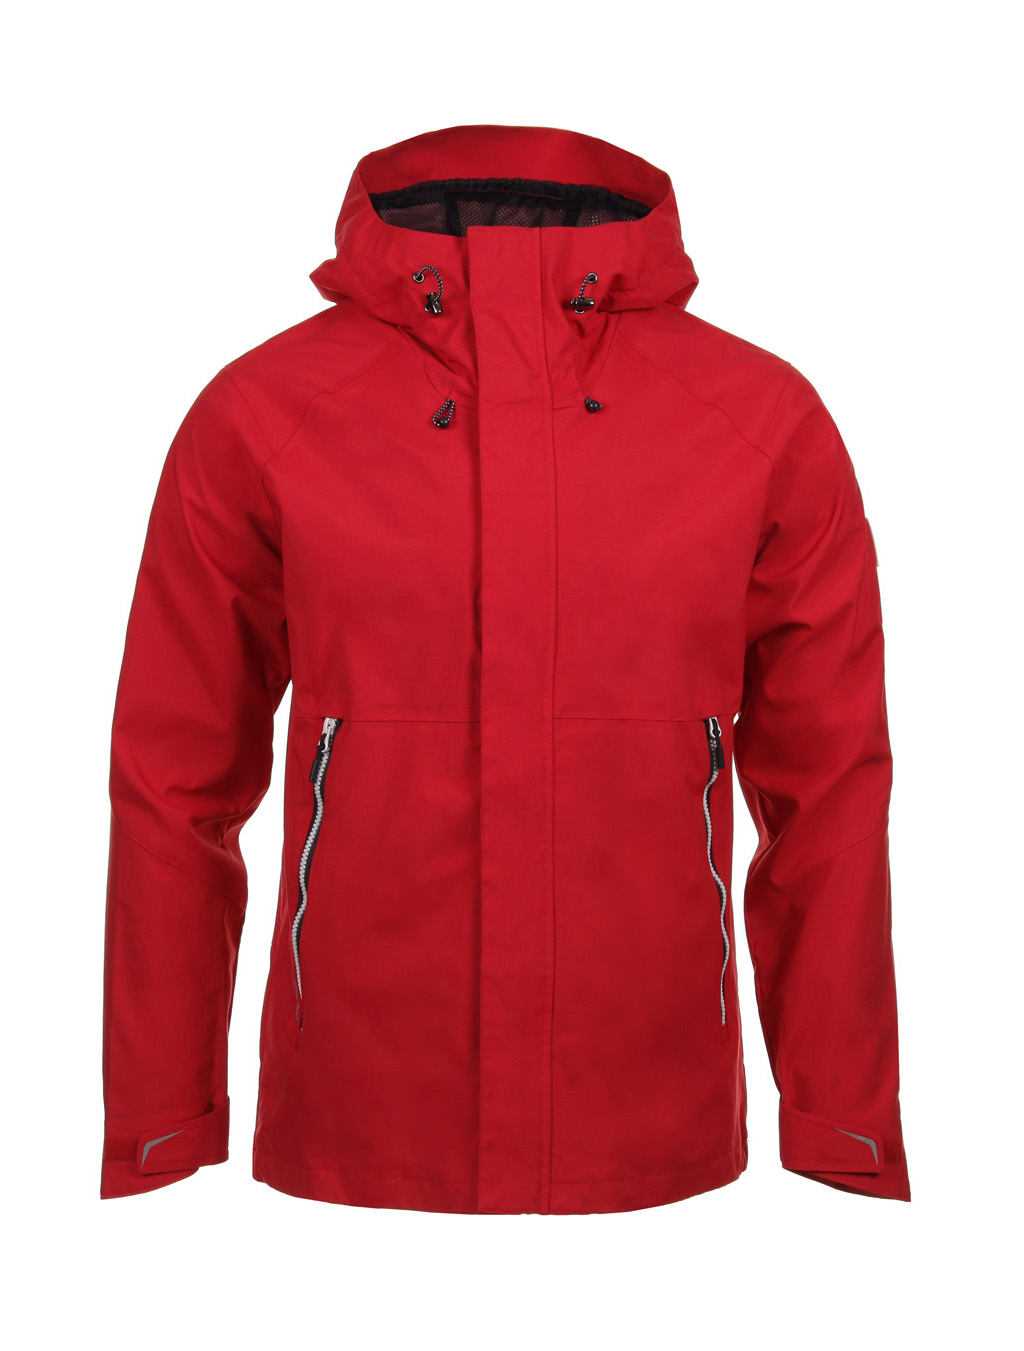 Luoto myrsky jacket red front